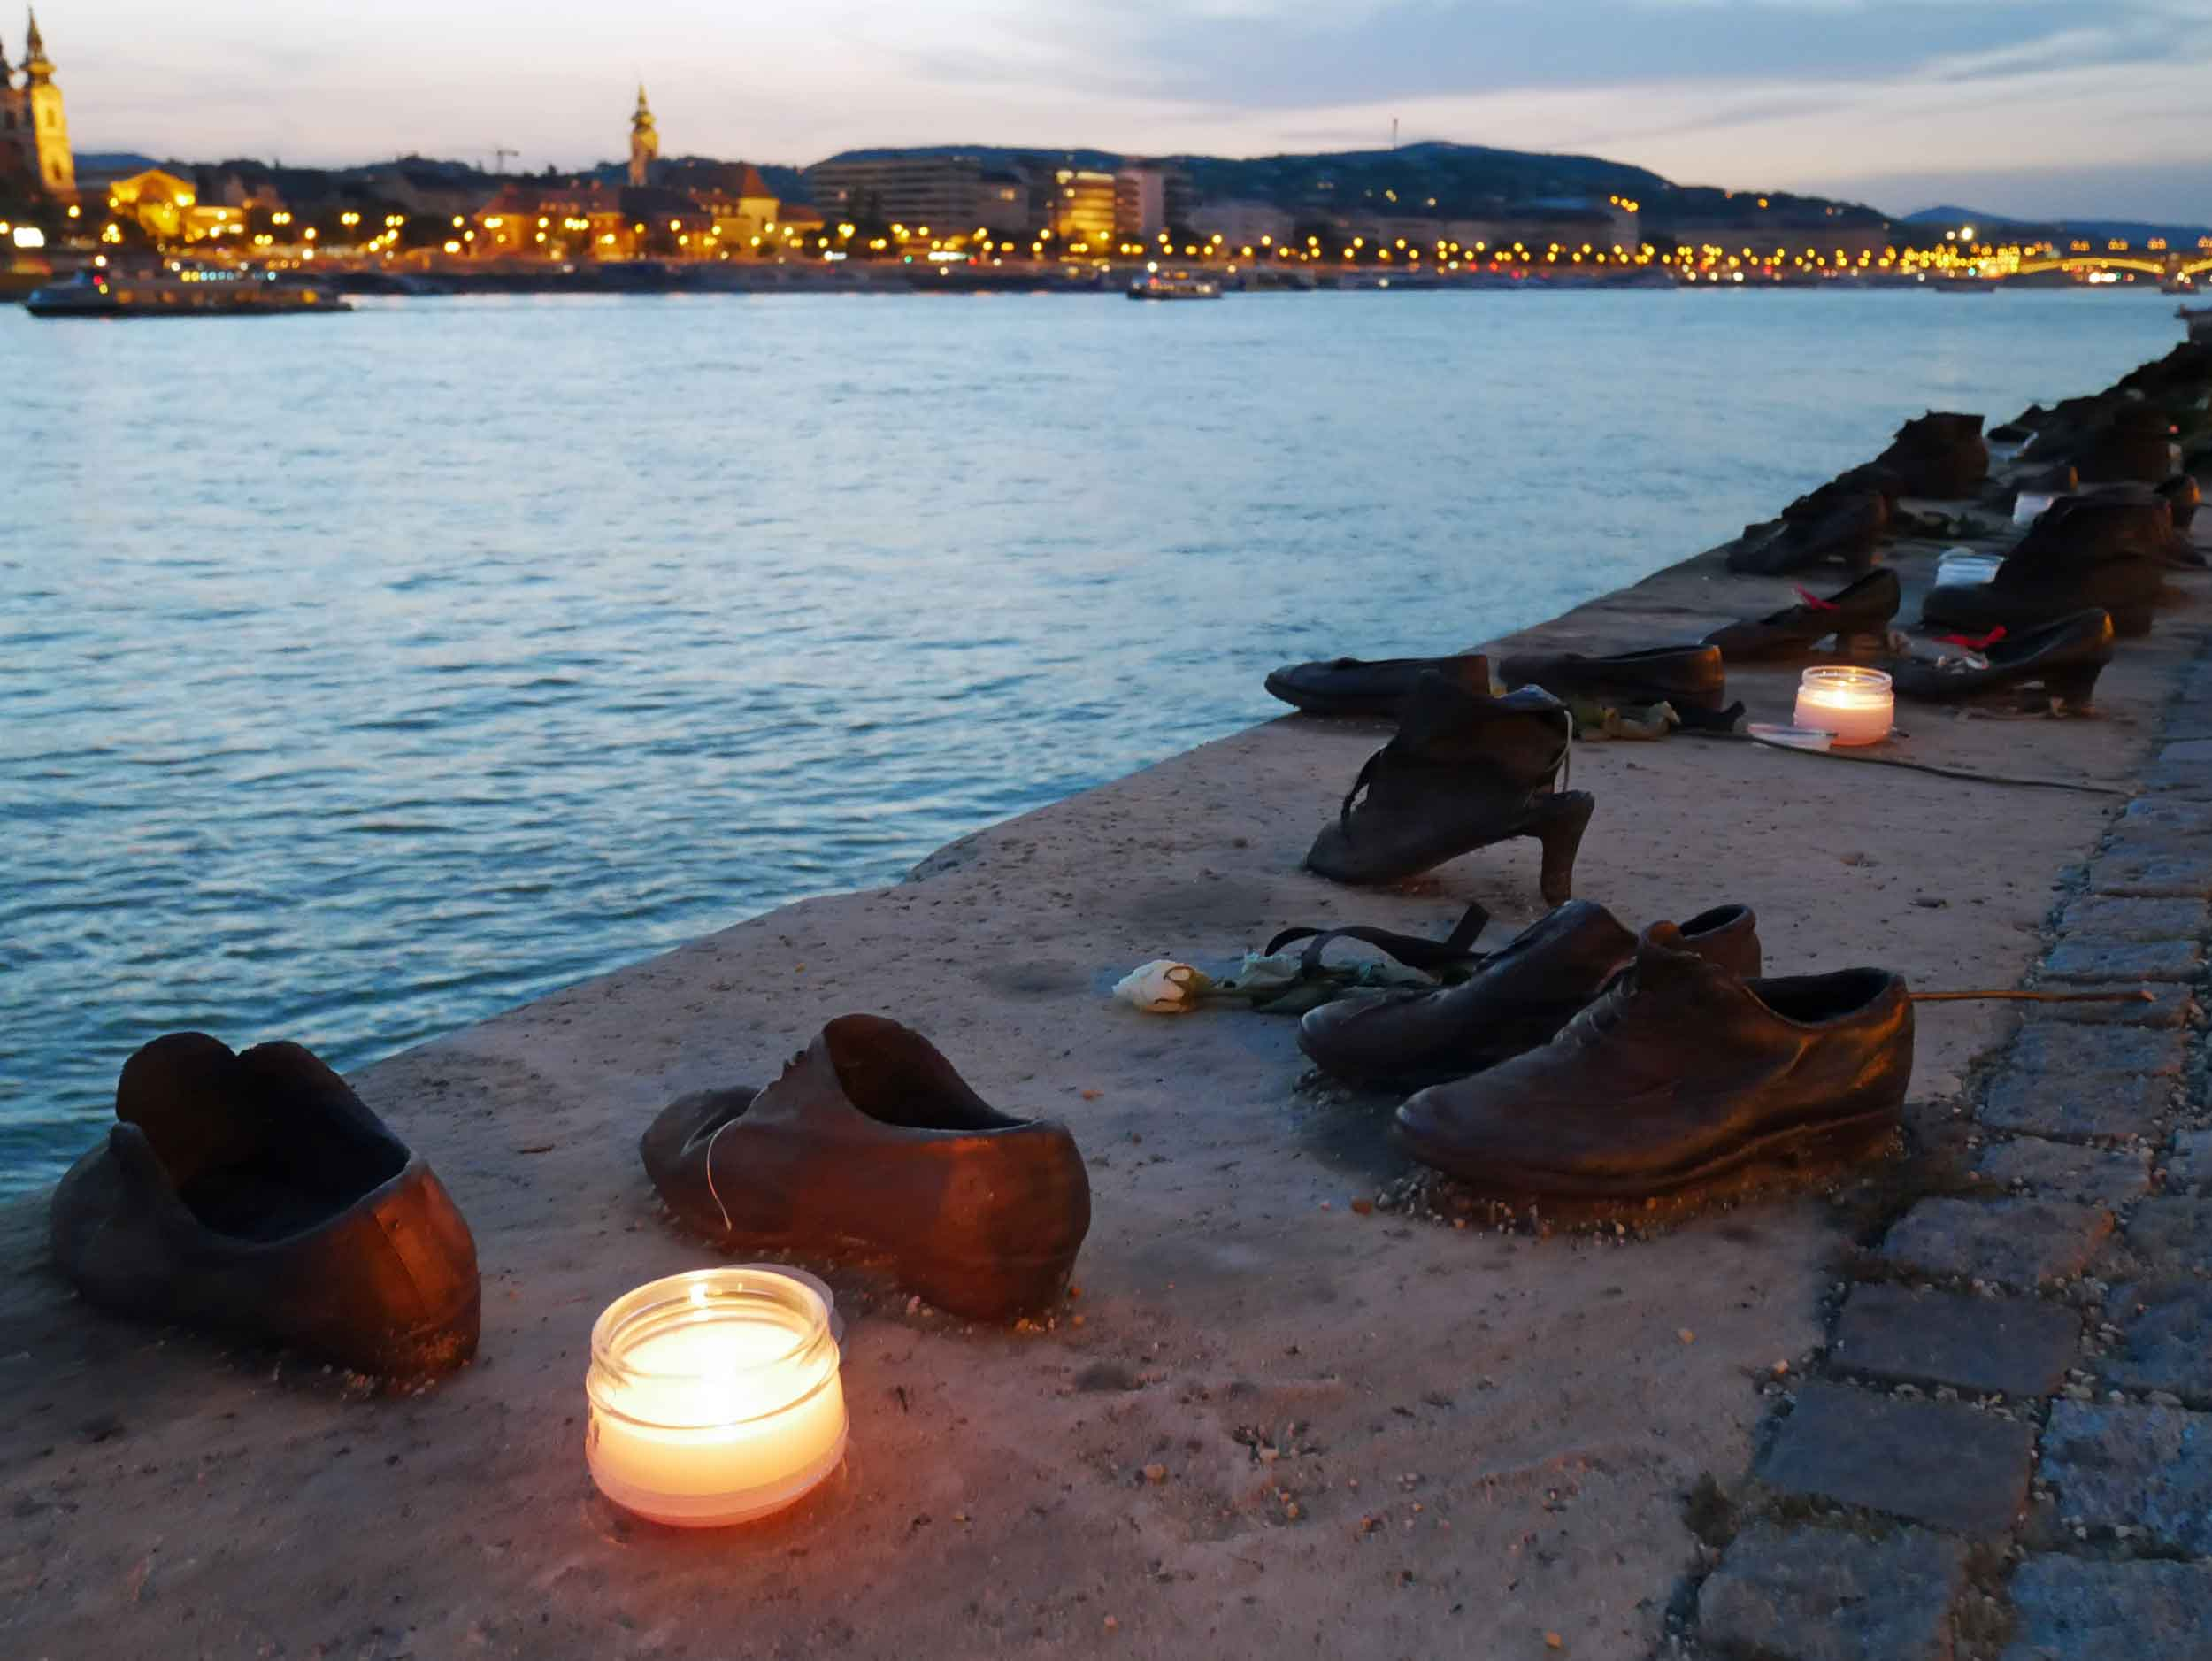 """Strolling the Danube, we passed """"Shoes on the Danube Bank,"""" a memorial to the horrific events of the mid-1940s when Jewish people were ordered to remove their shoes before being shot and falling into the river."""